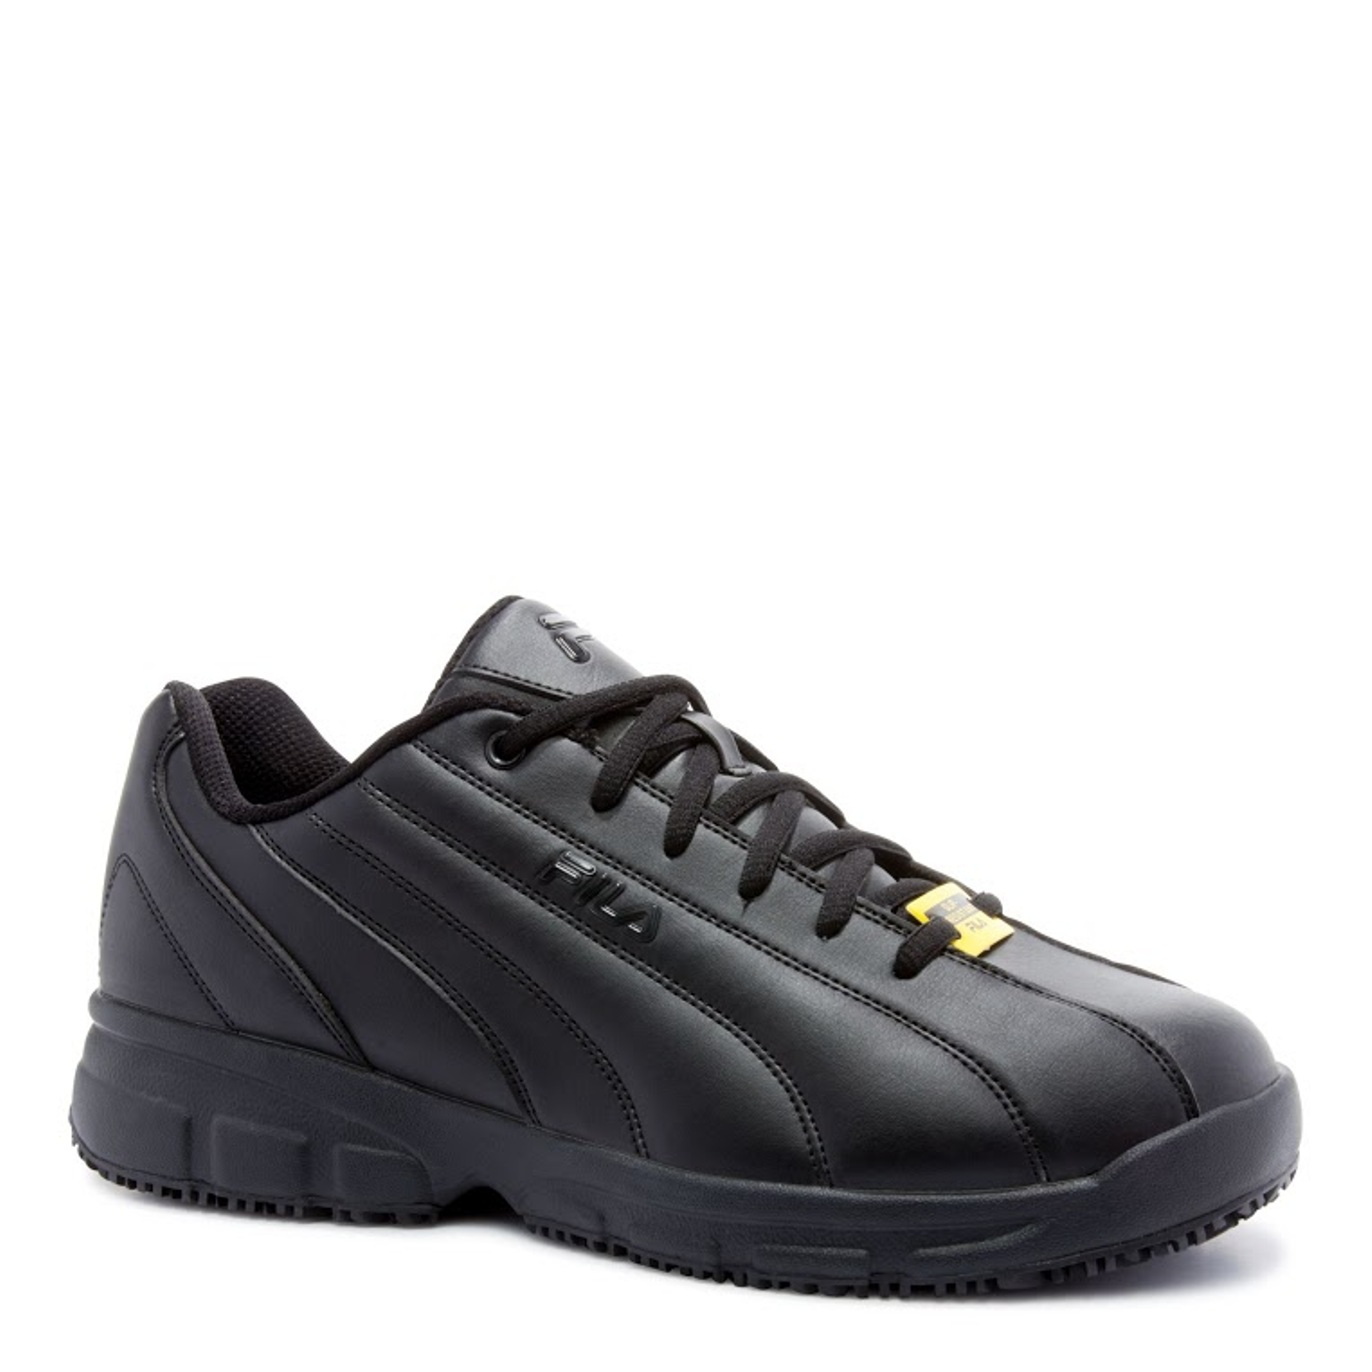 Fila Work Men Memory Niteshift SR Sneakers by Fila